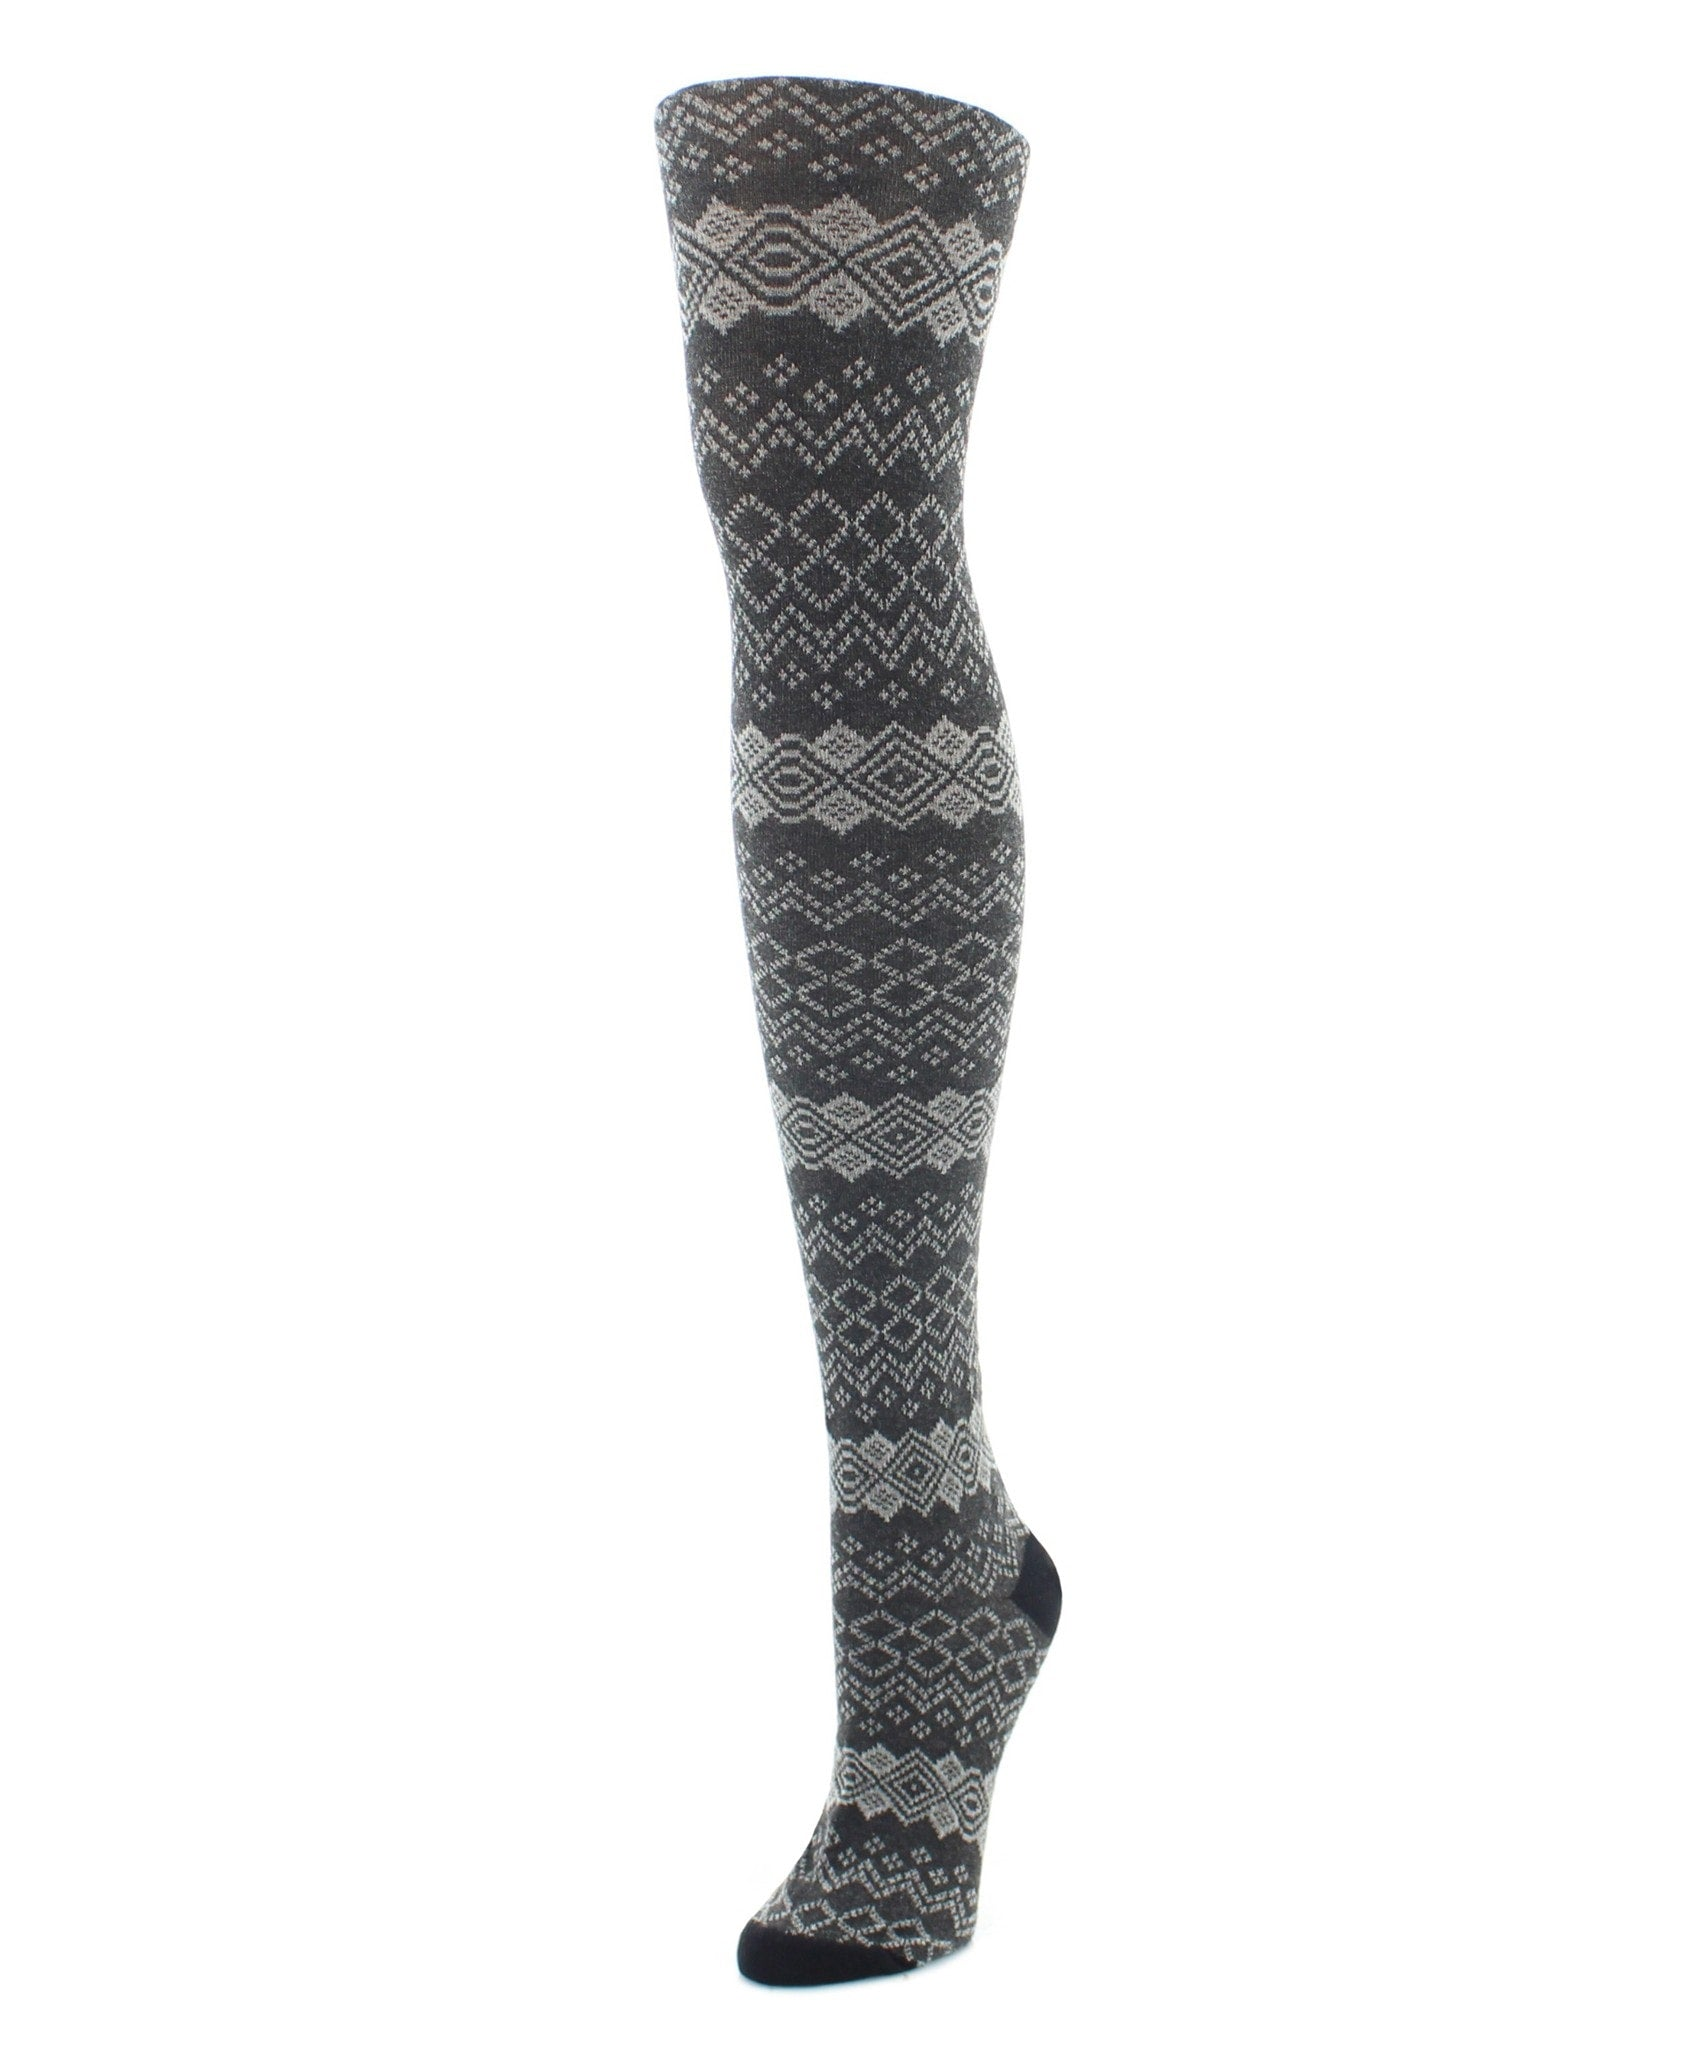 Sweater Tights | Patterned Tights | Horizontal Diamond